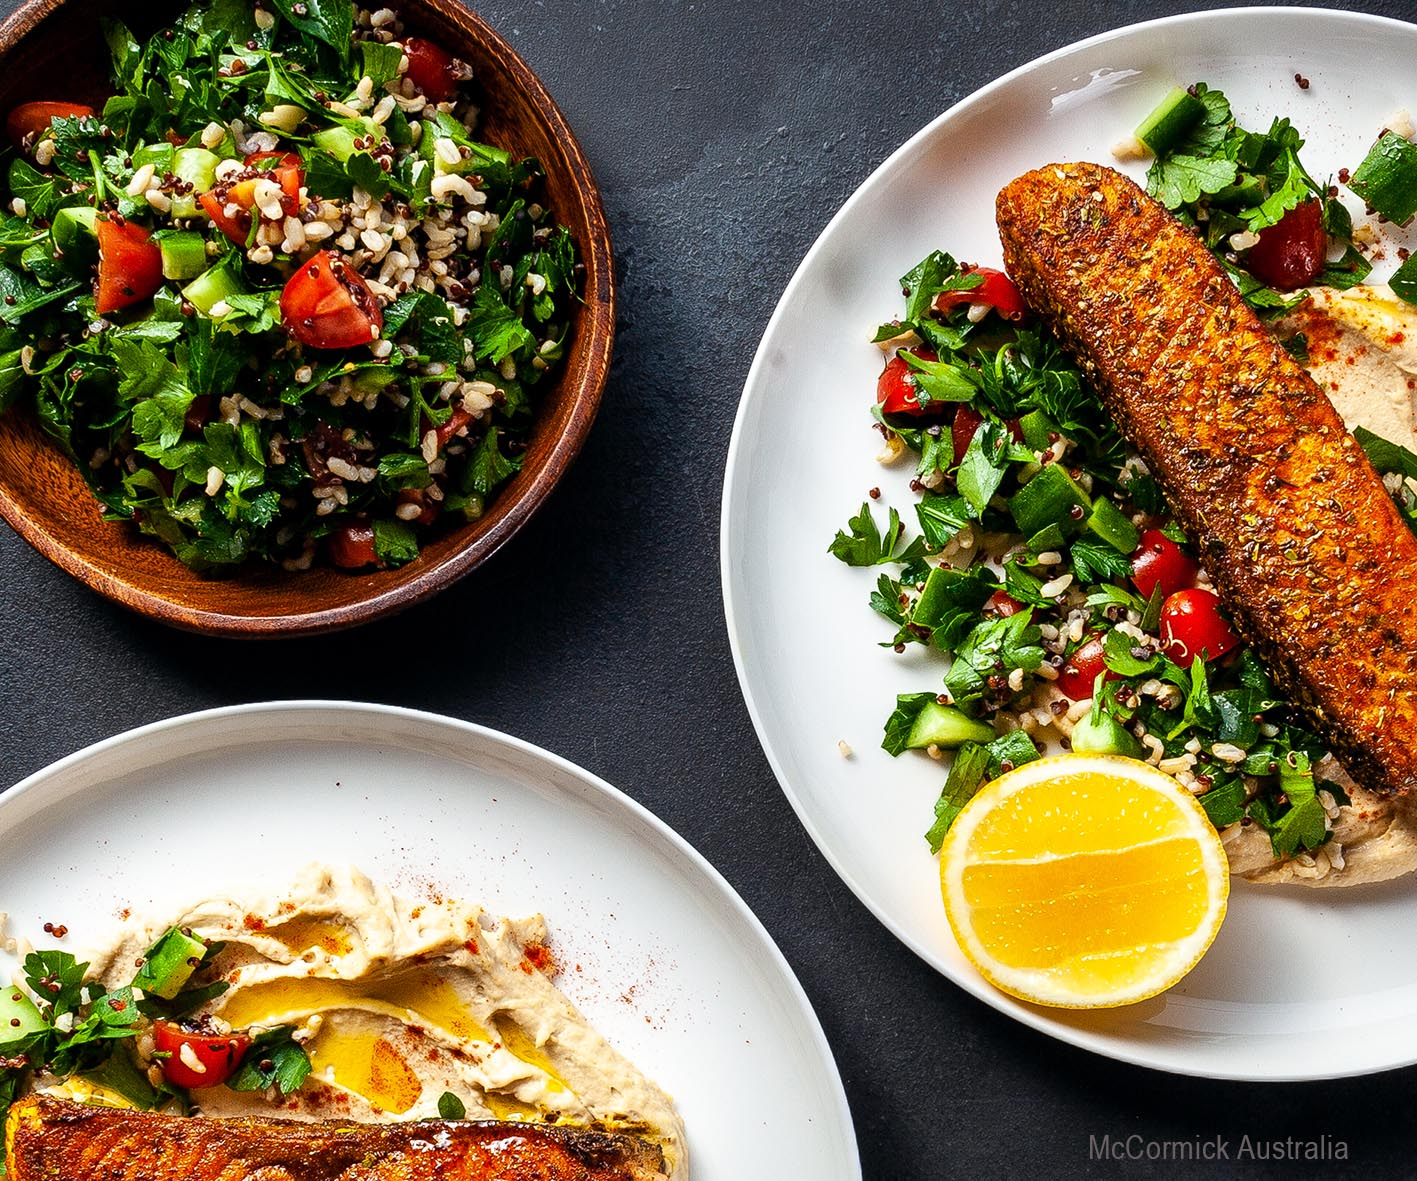 COOKINGPOSTJPEG - SPICE-CRUSTED-FISH-CHEATS-TABOULI